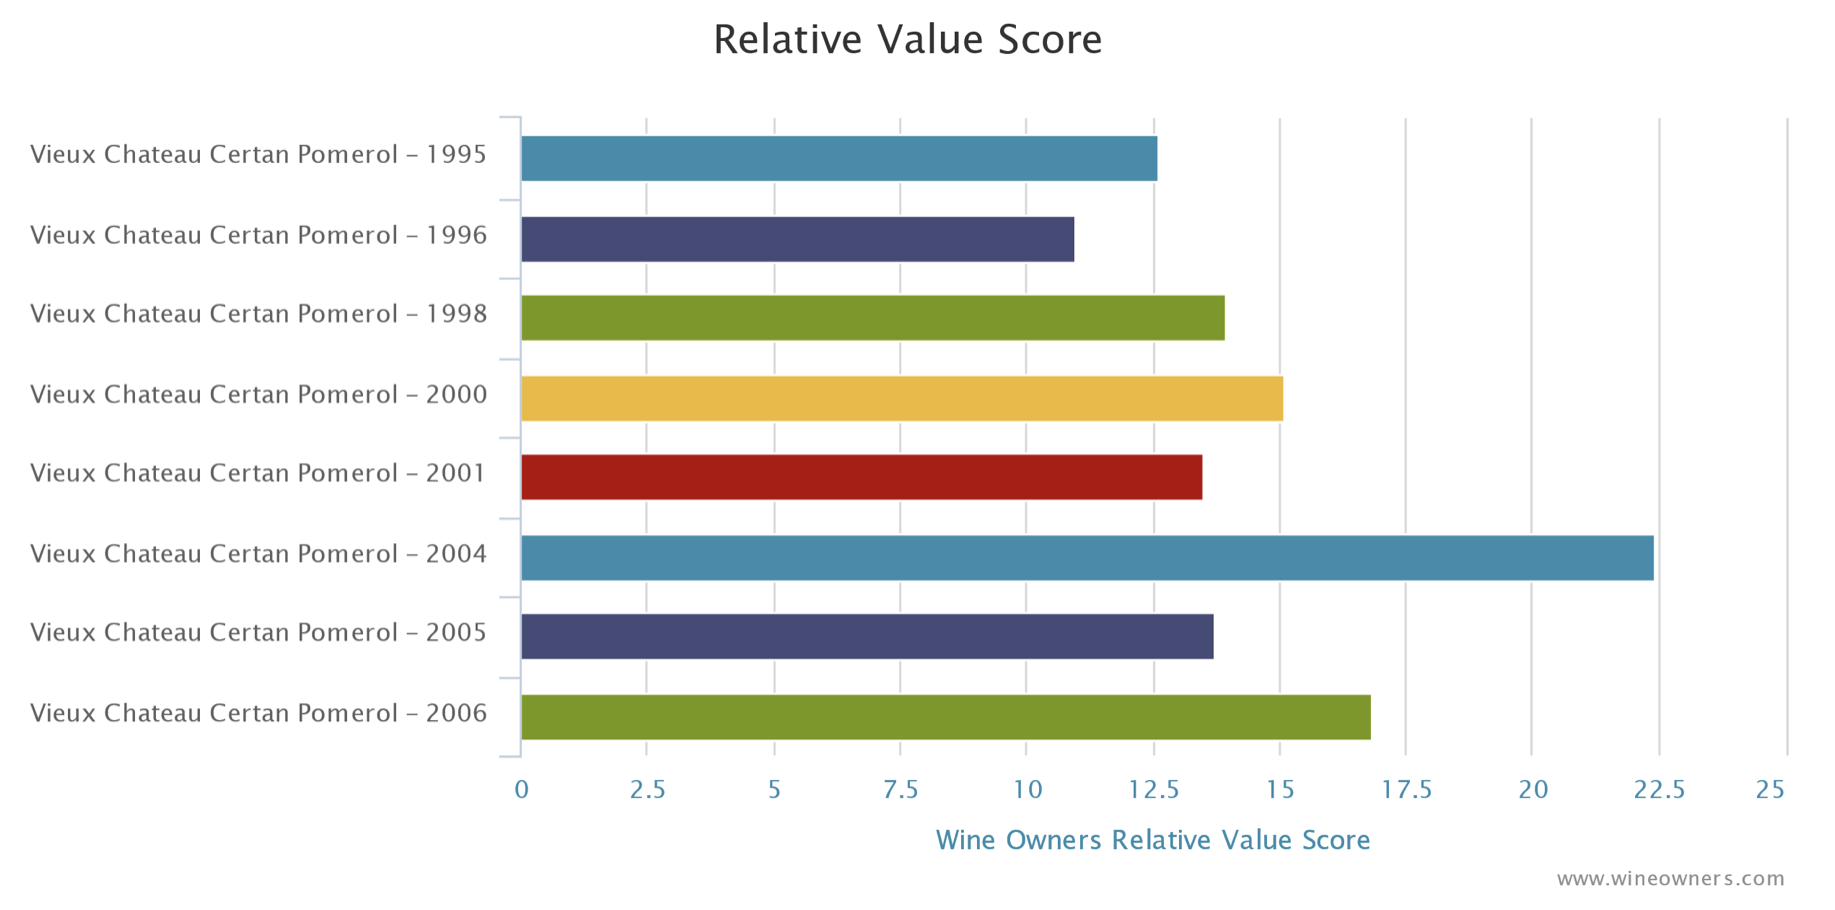 Vieux Chateau Certan - Relative Value Score - Wine Owners